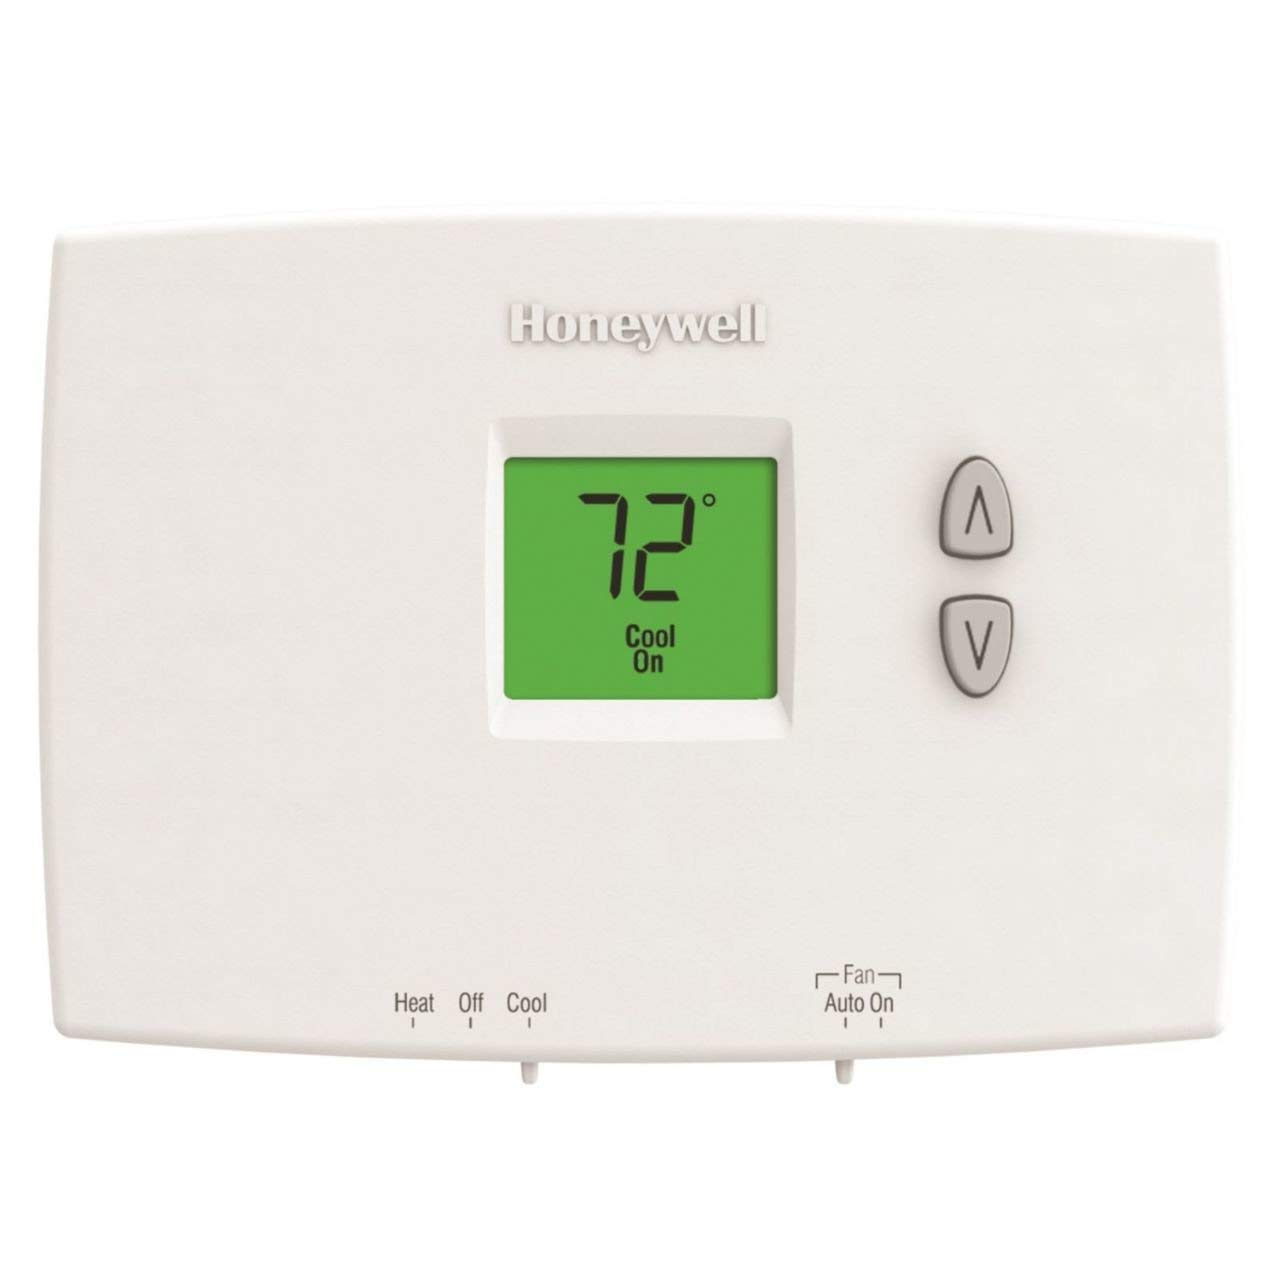 Honeywell Programmable Thermostat Honeywell Th1110dh1003 Horizontal Pro 1000 Non Programmable